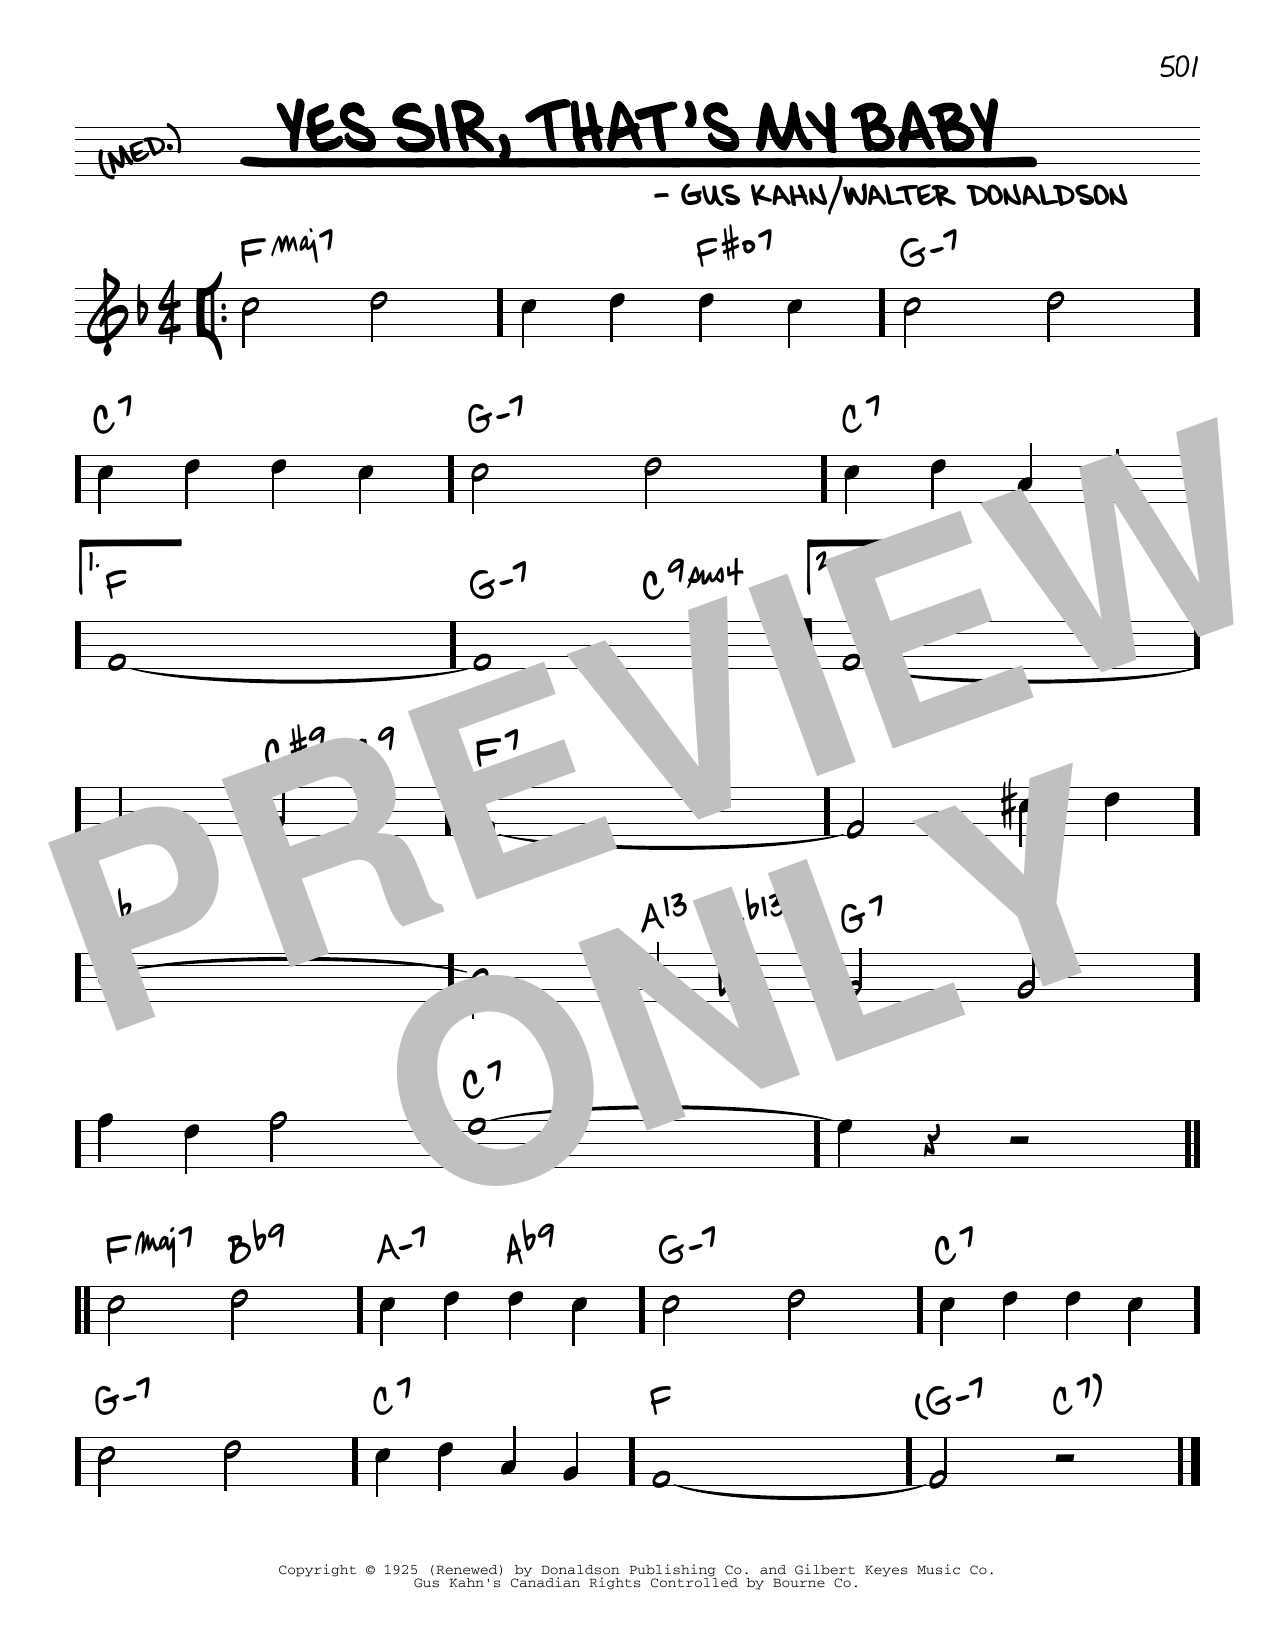 Walter Donaldson and Gus Kahn Yes Sir, That's My Baby sheet music notes and chords. Download Printable PDF.